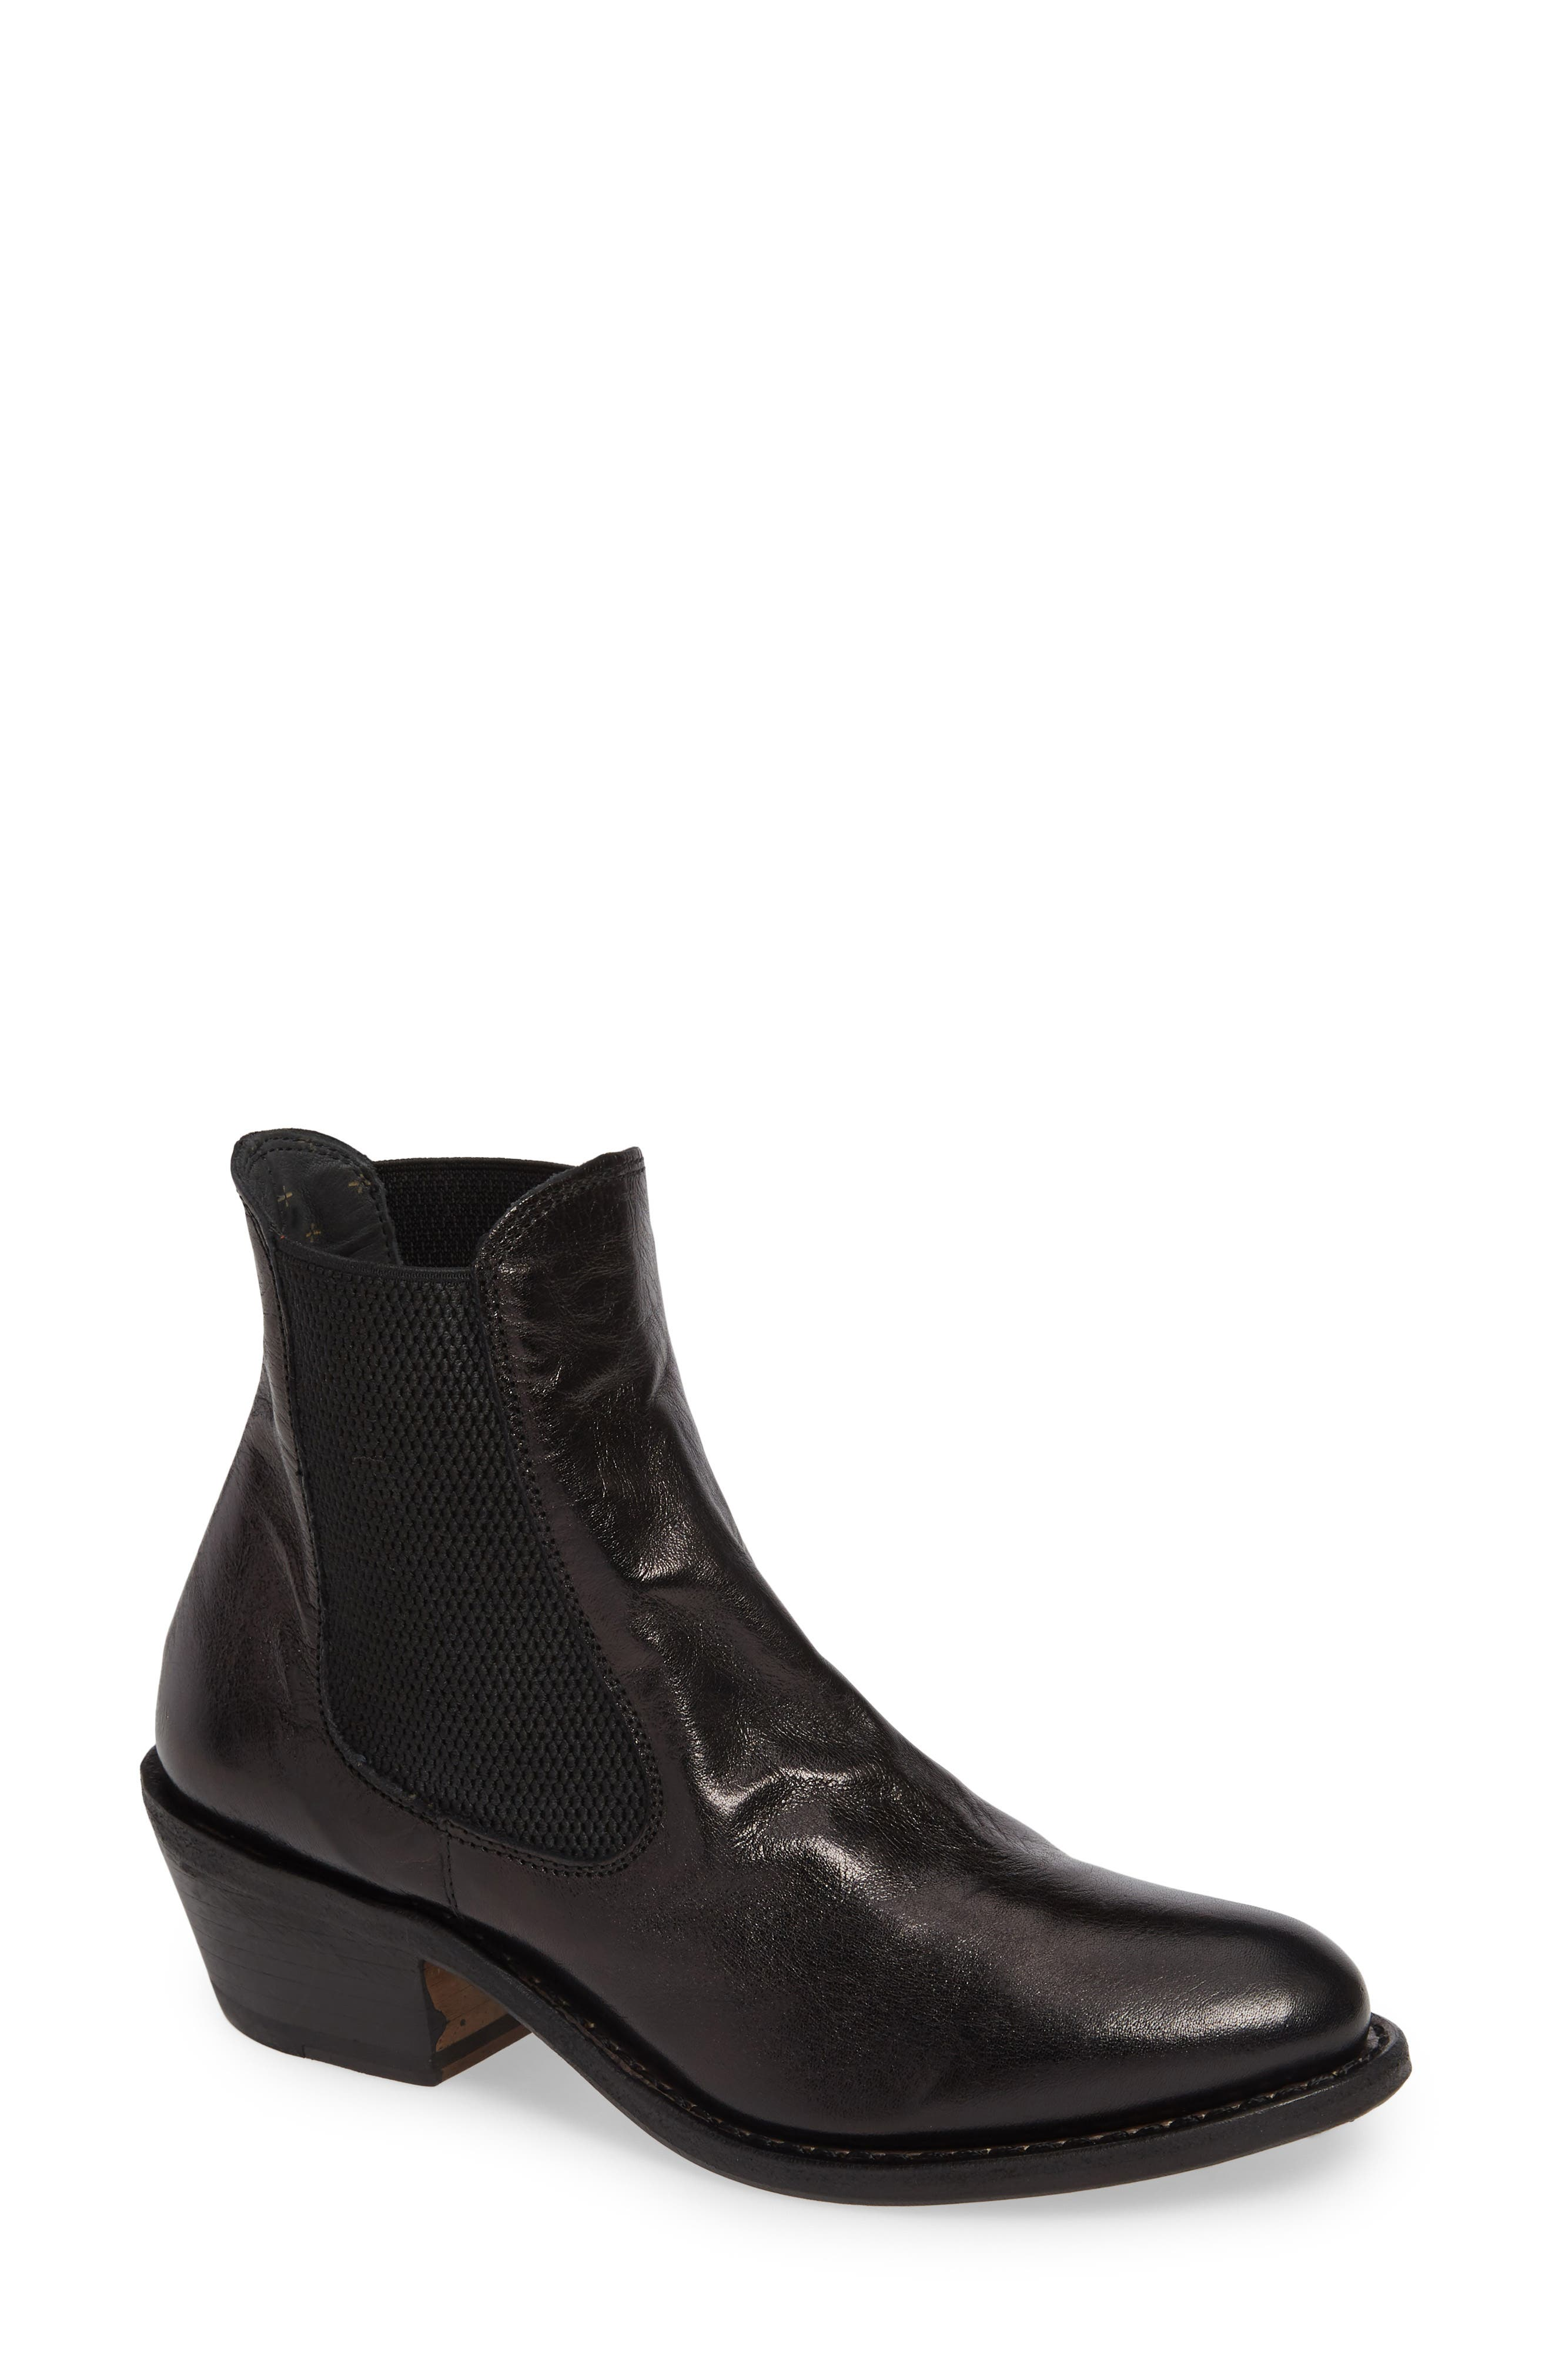 Roxy Boot,                             Main thumbnail 1, color,                             BLACK LEATHER